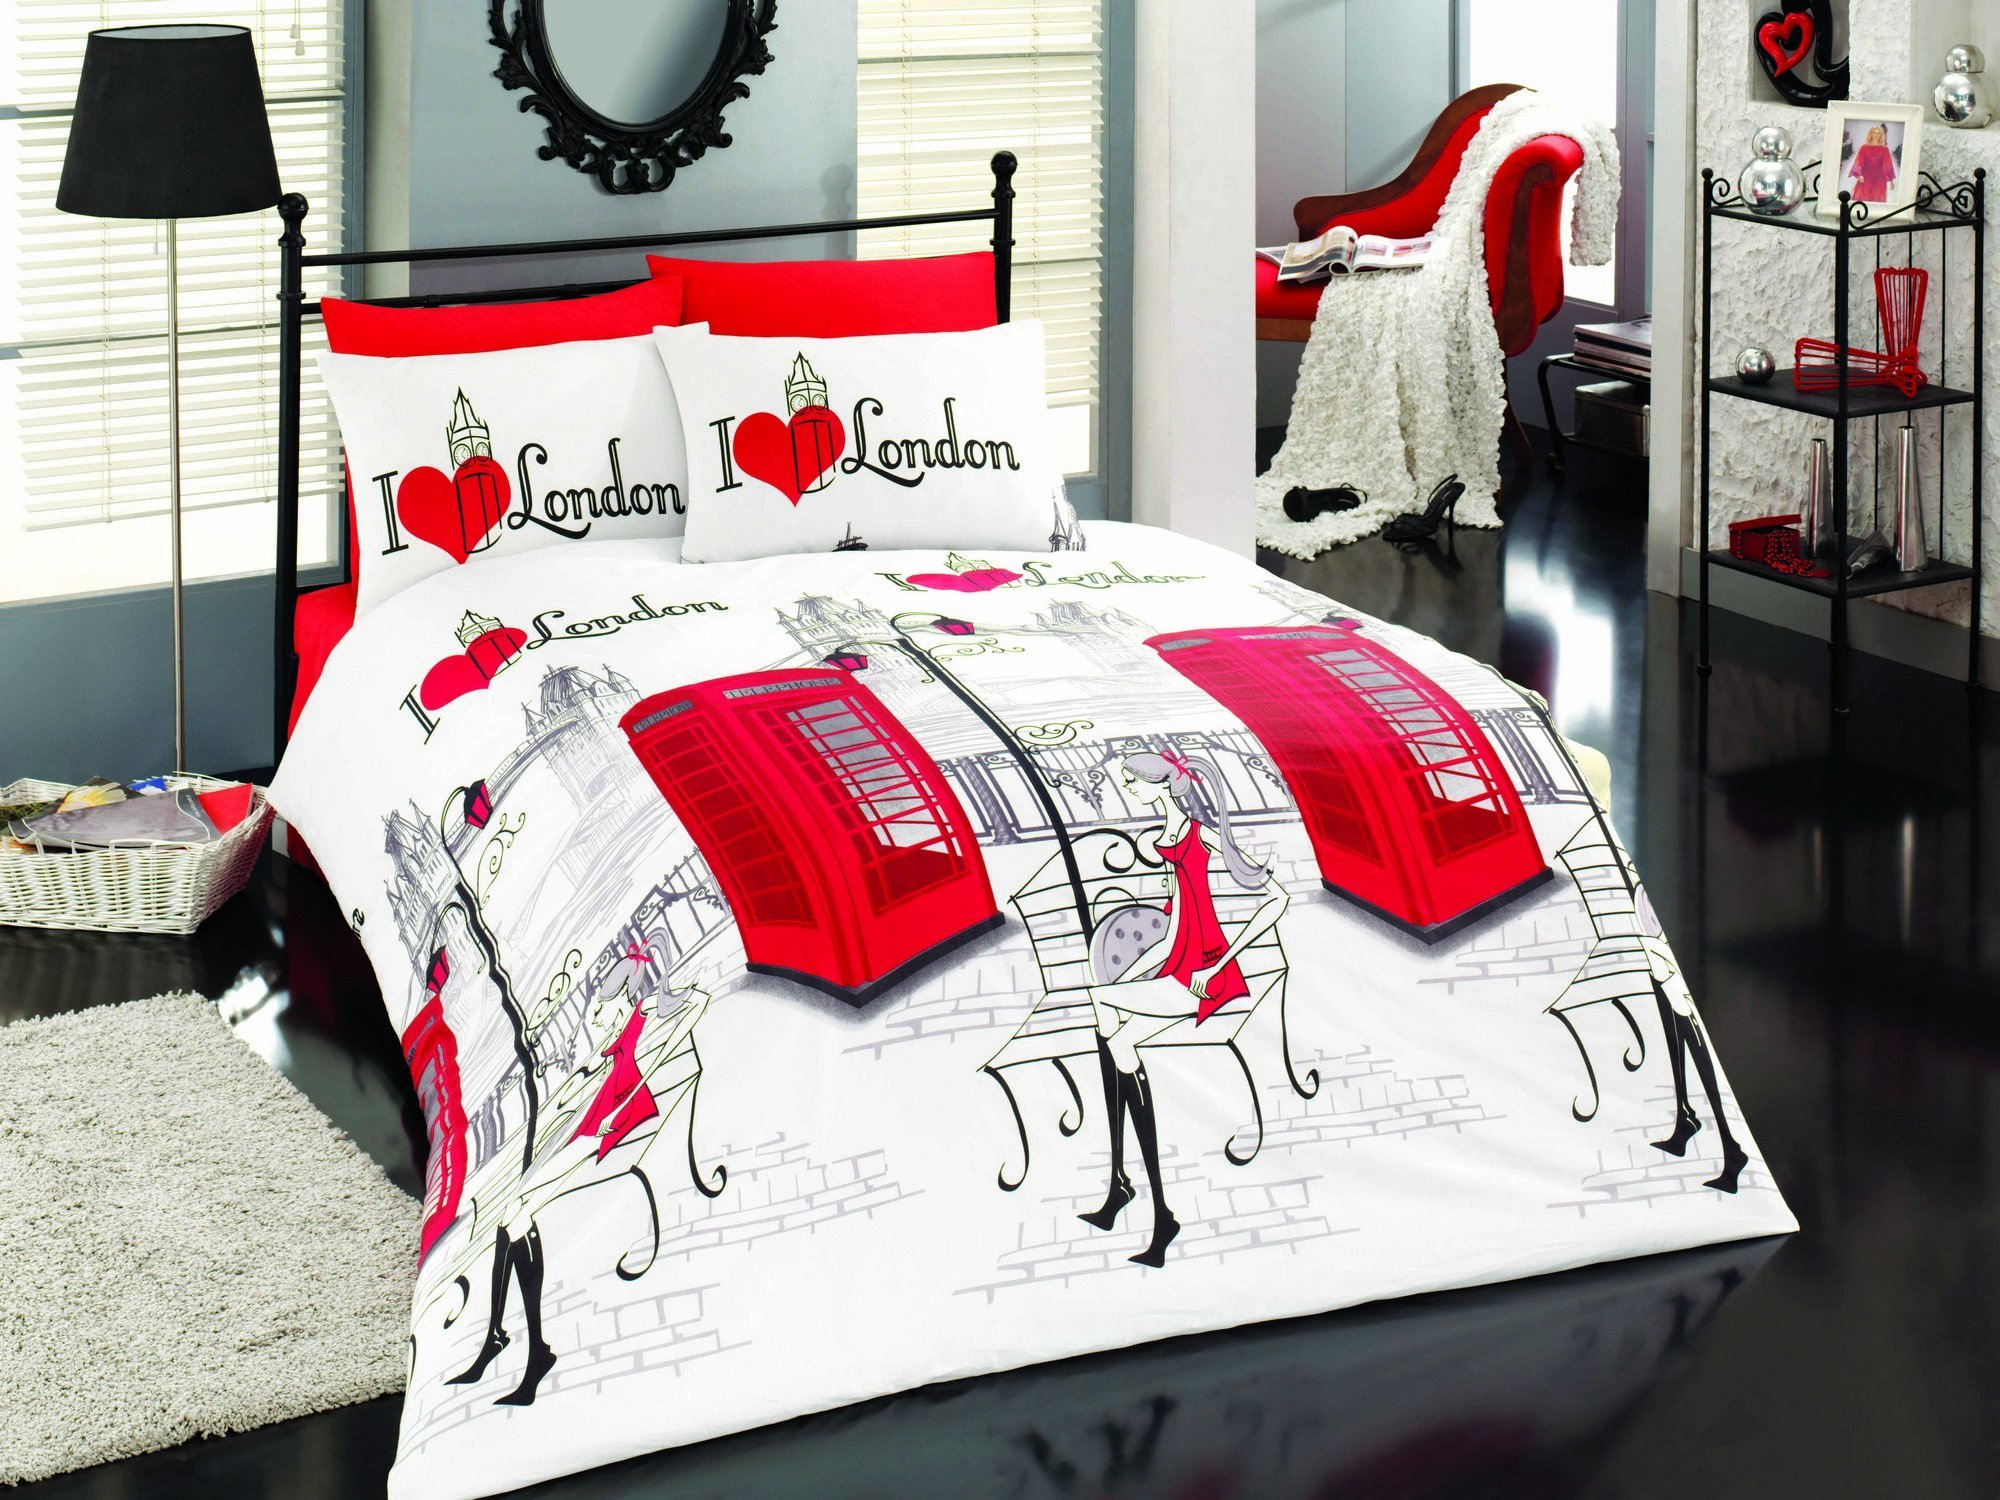 LaModaHome Culture Duvet Cover Set, I Love London, Red City, Girl, Payphone - 50% Cotton 50% Polyester - Set of 2 - Duvet Cover and Pillowcase for Single Bed